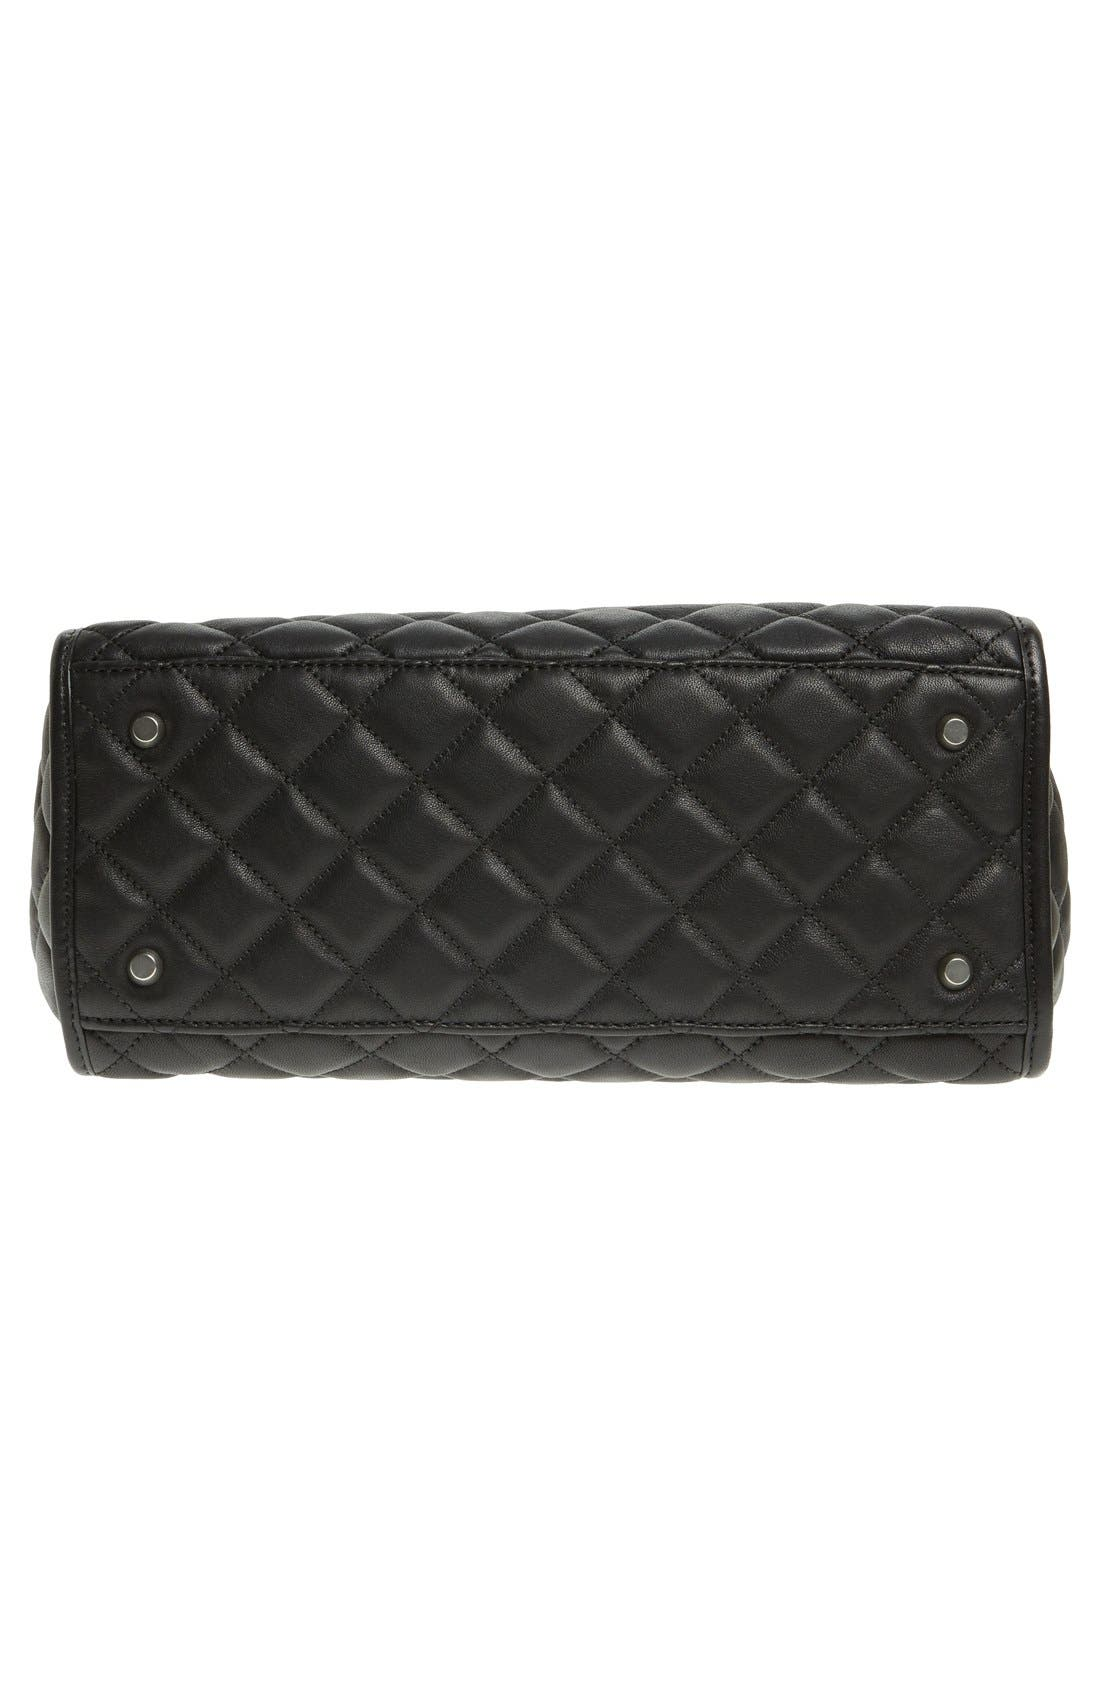 'Rachel - Large' Quilted Leather Satchel,                             Alternate thumbnail 3, color,                             001